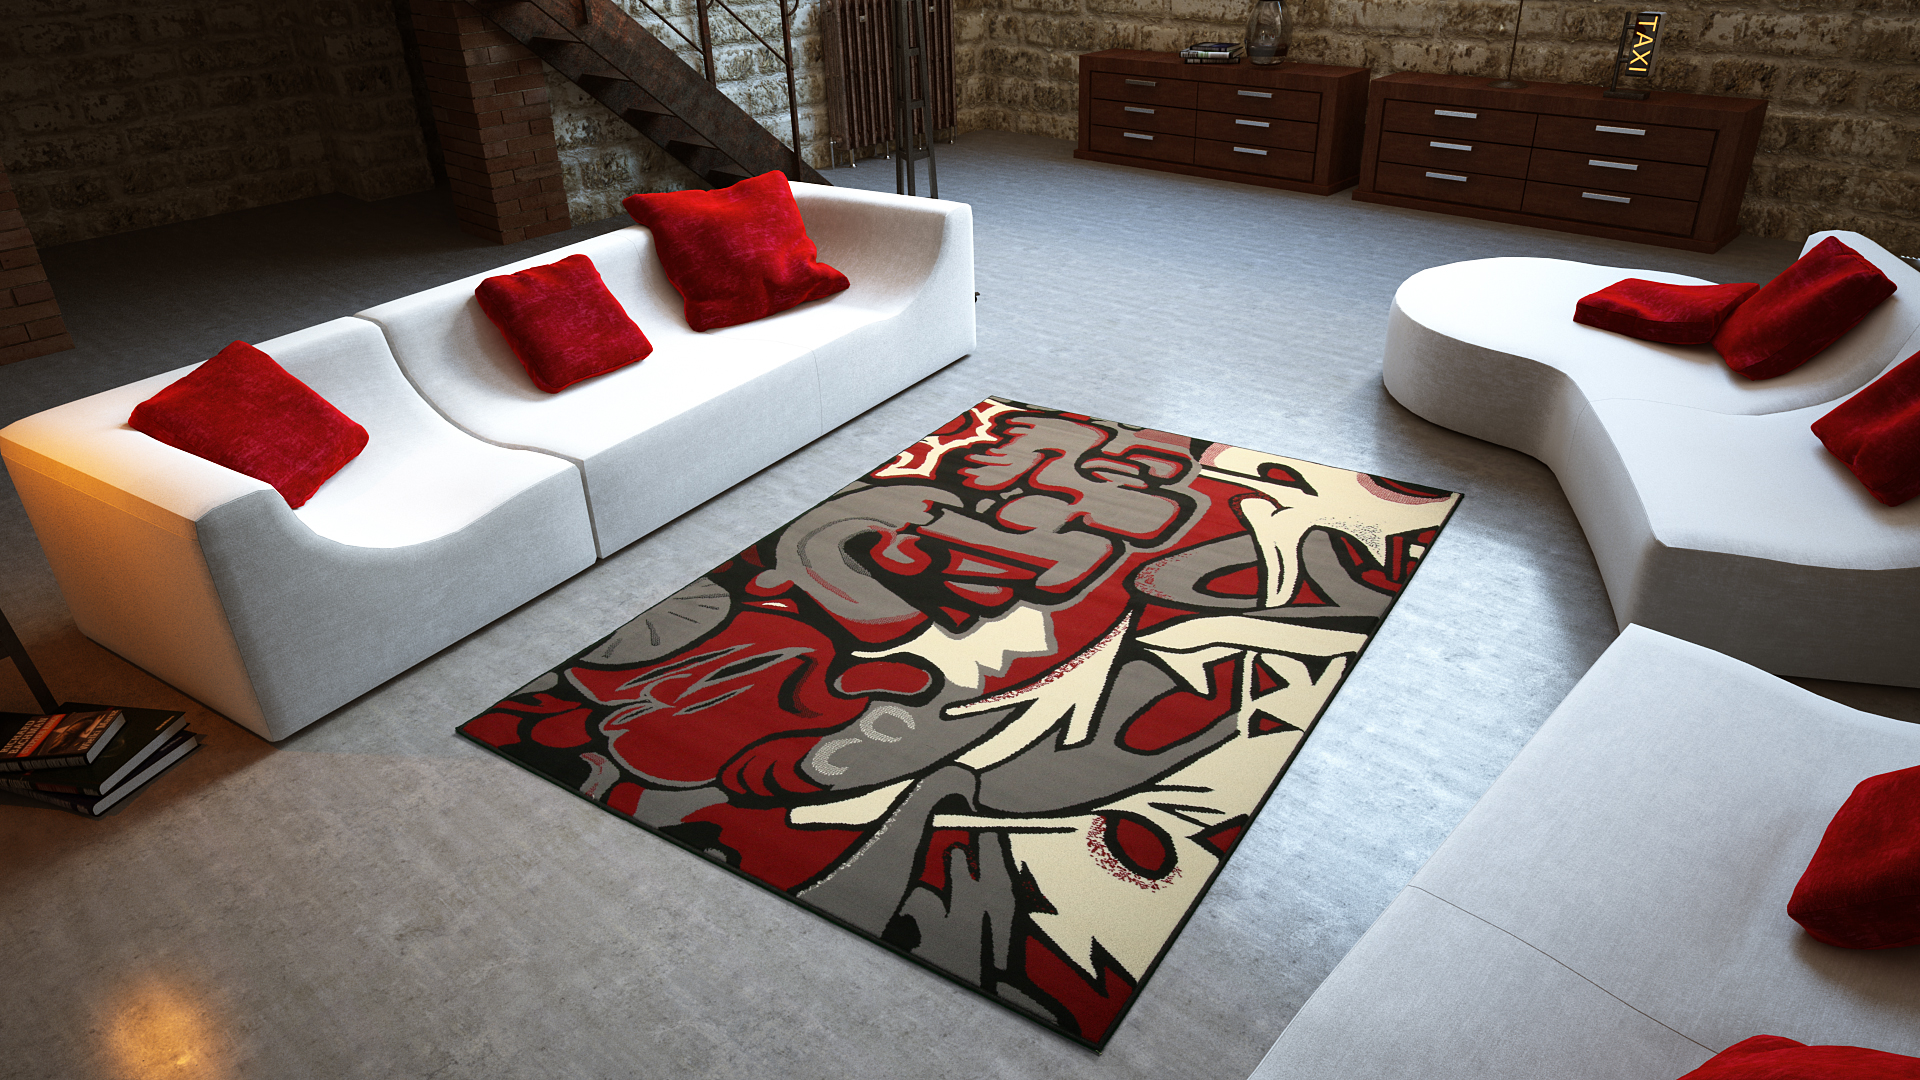 Universol tapis salon graffitis tags rouge - Tapis de salon rouge ...